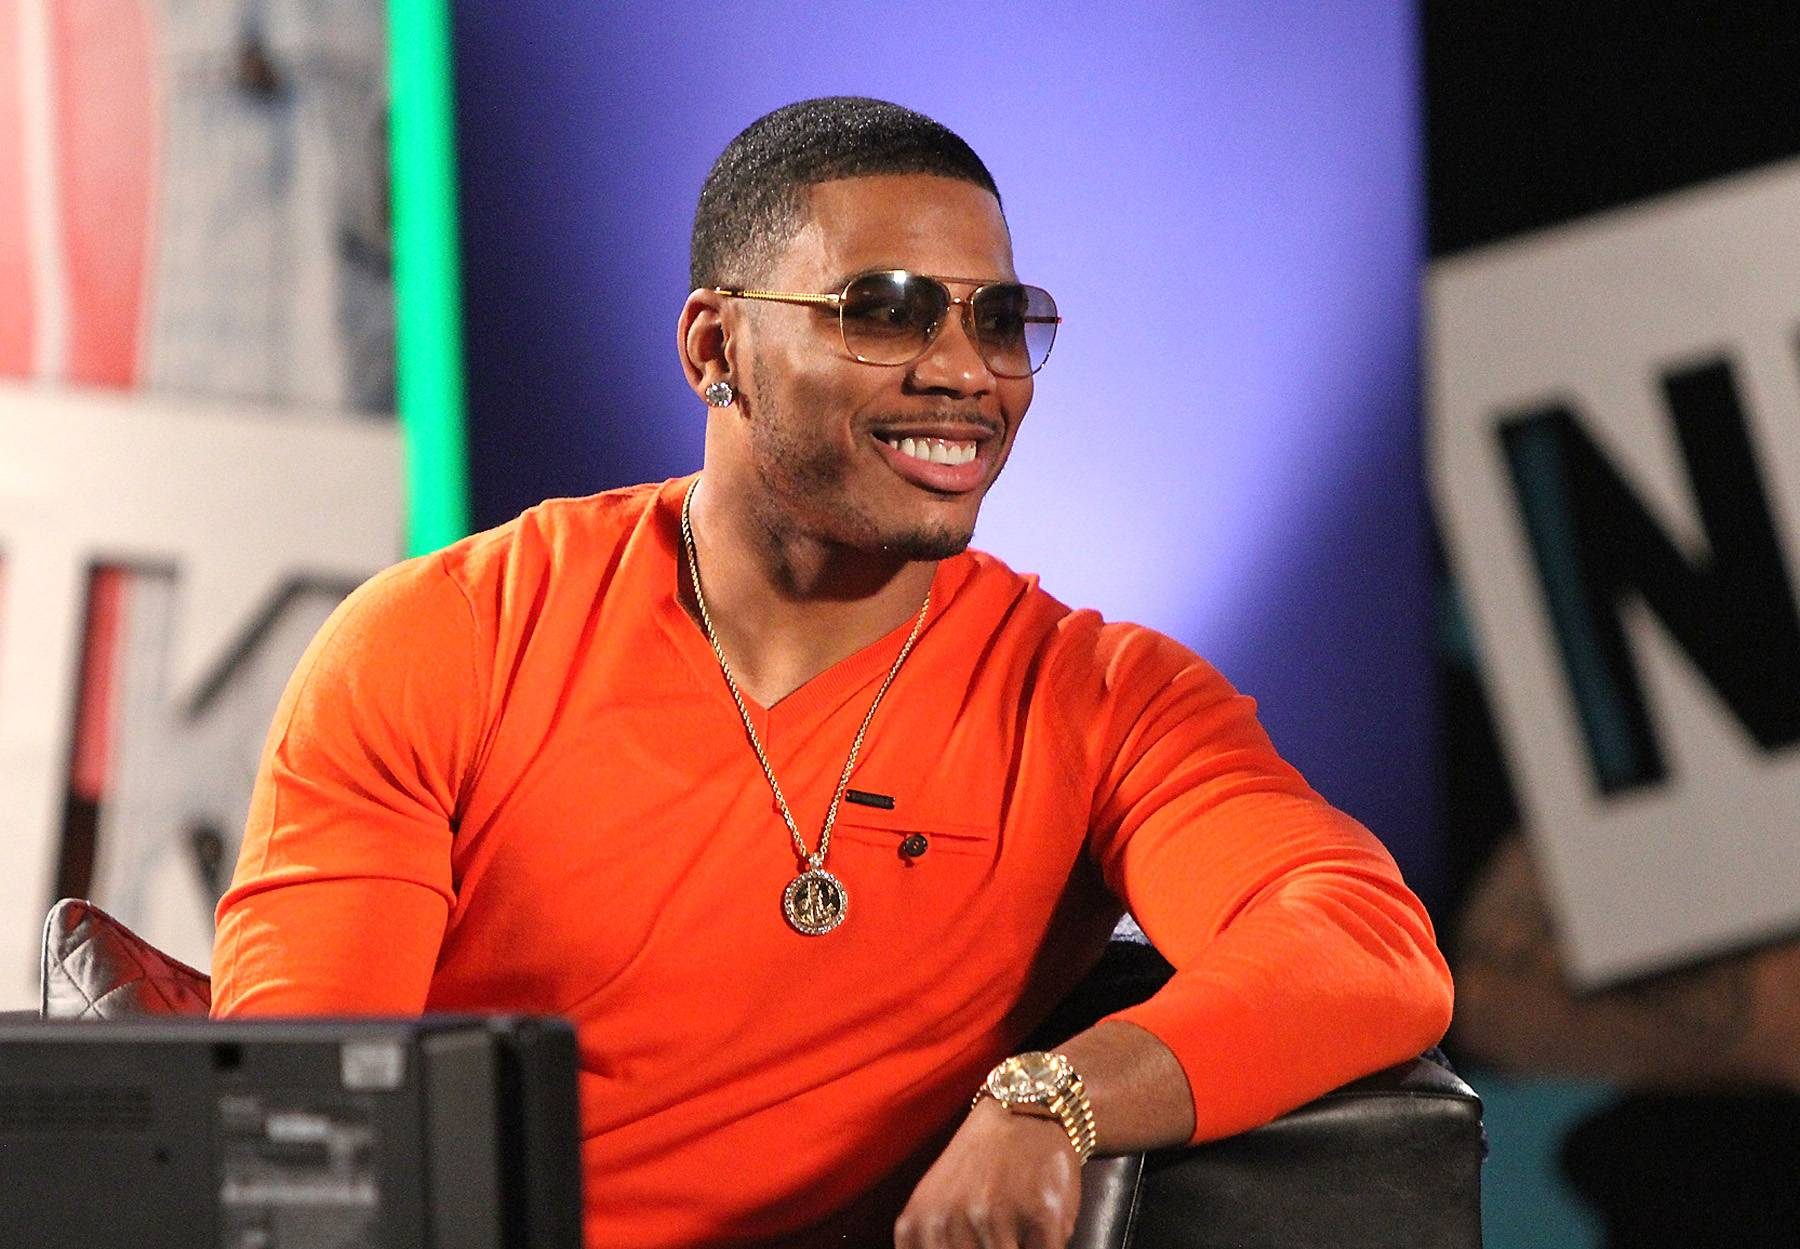 Money Shot - Nelly flashes his dope smile one time.  (Photo: Maury Phillips/WireImage)